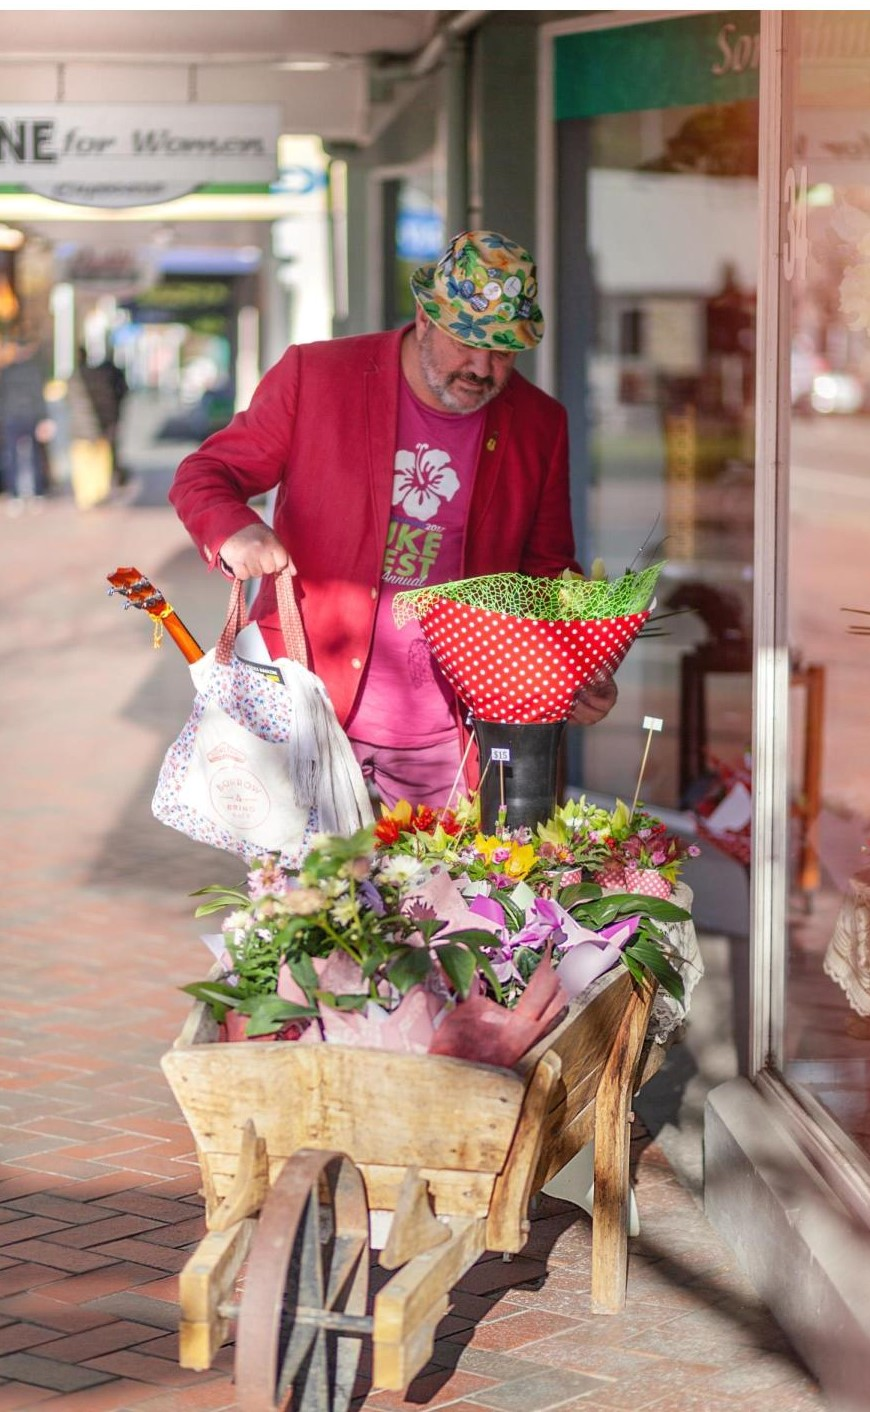 Shopping in Geraldine with Boomerang Bags